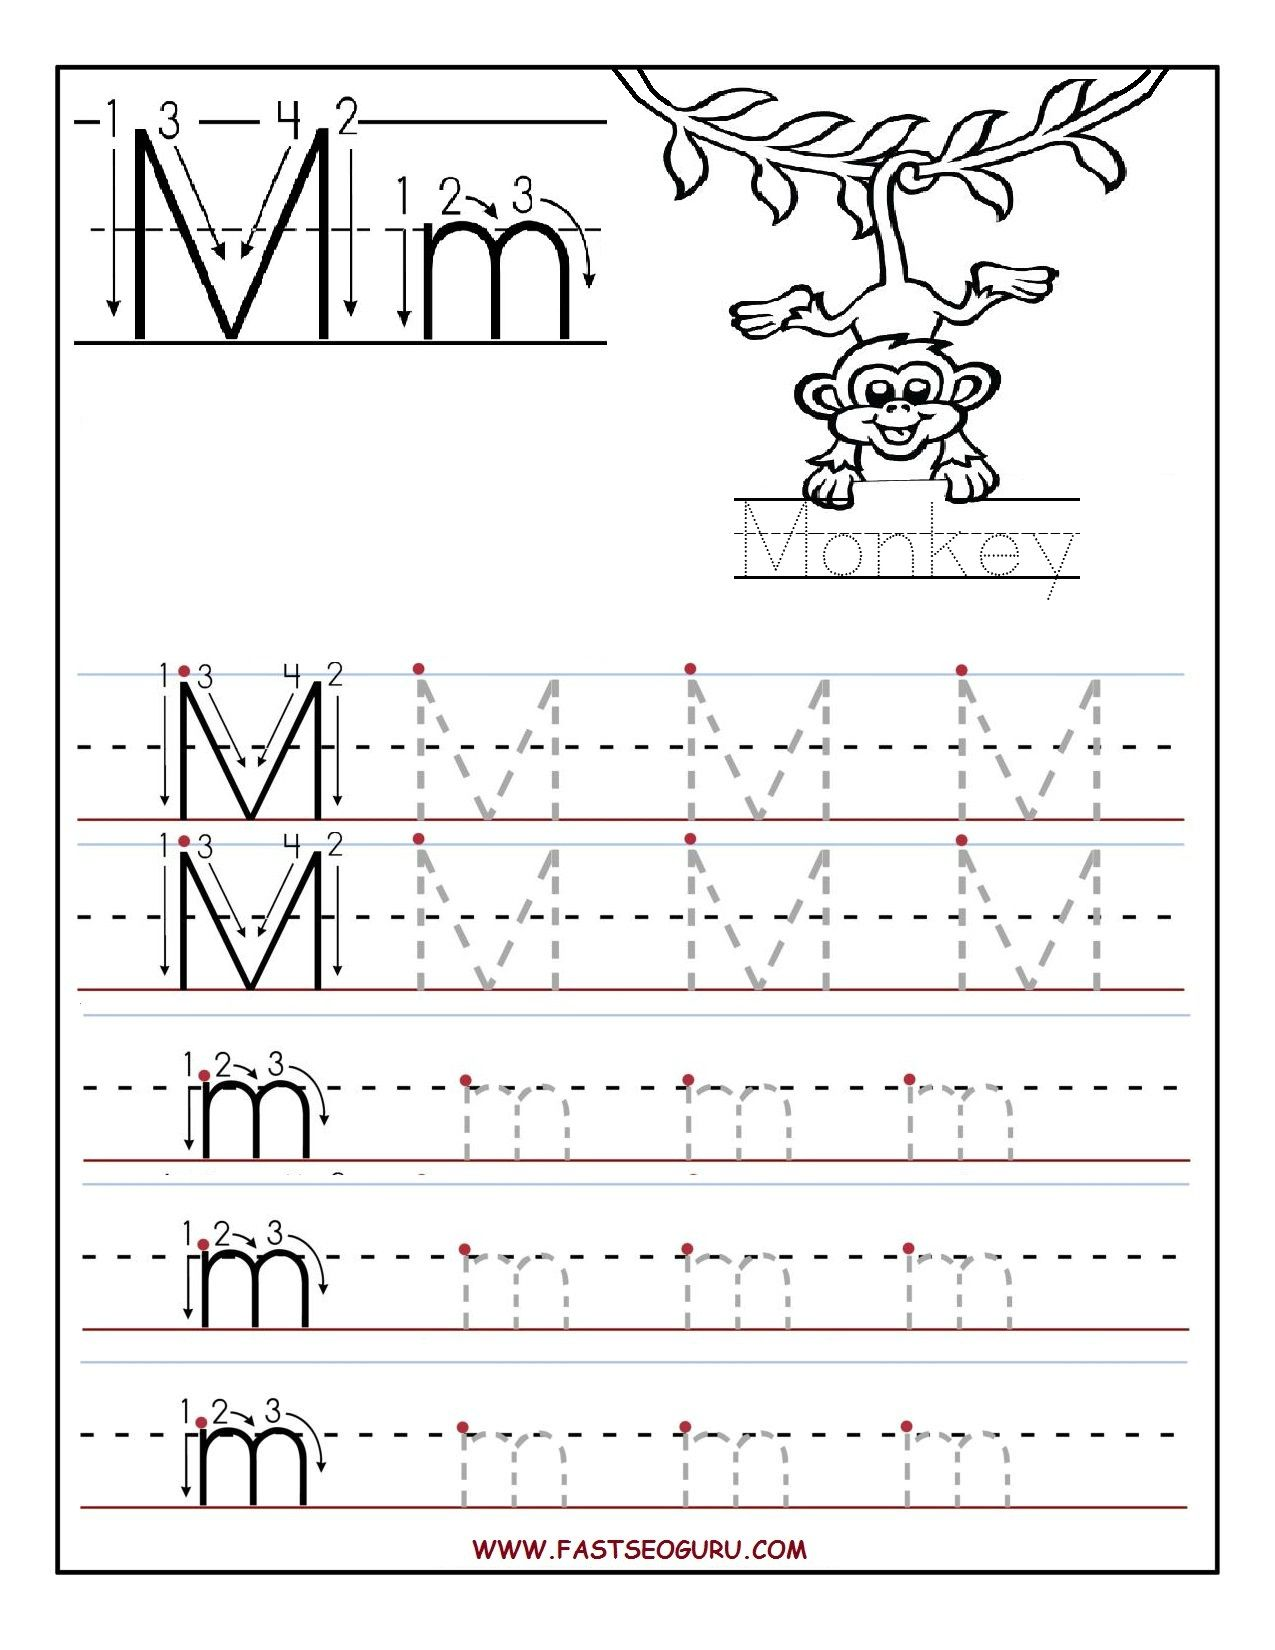 Printable letter M tracing worksheets for preschool | Bobbi likes ...